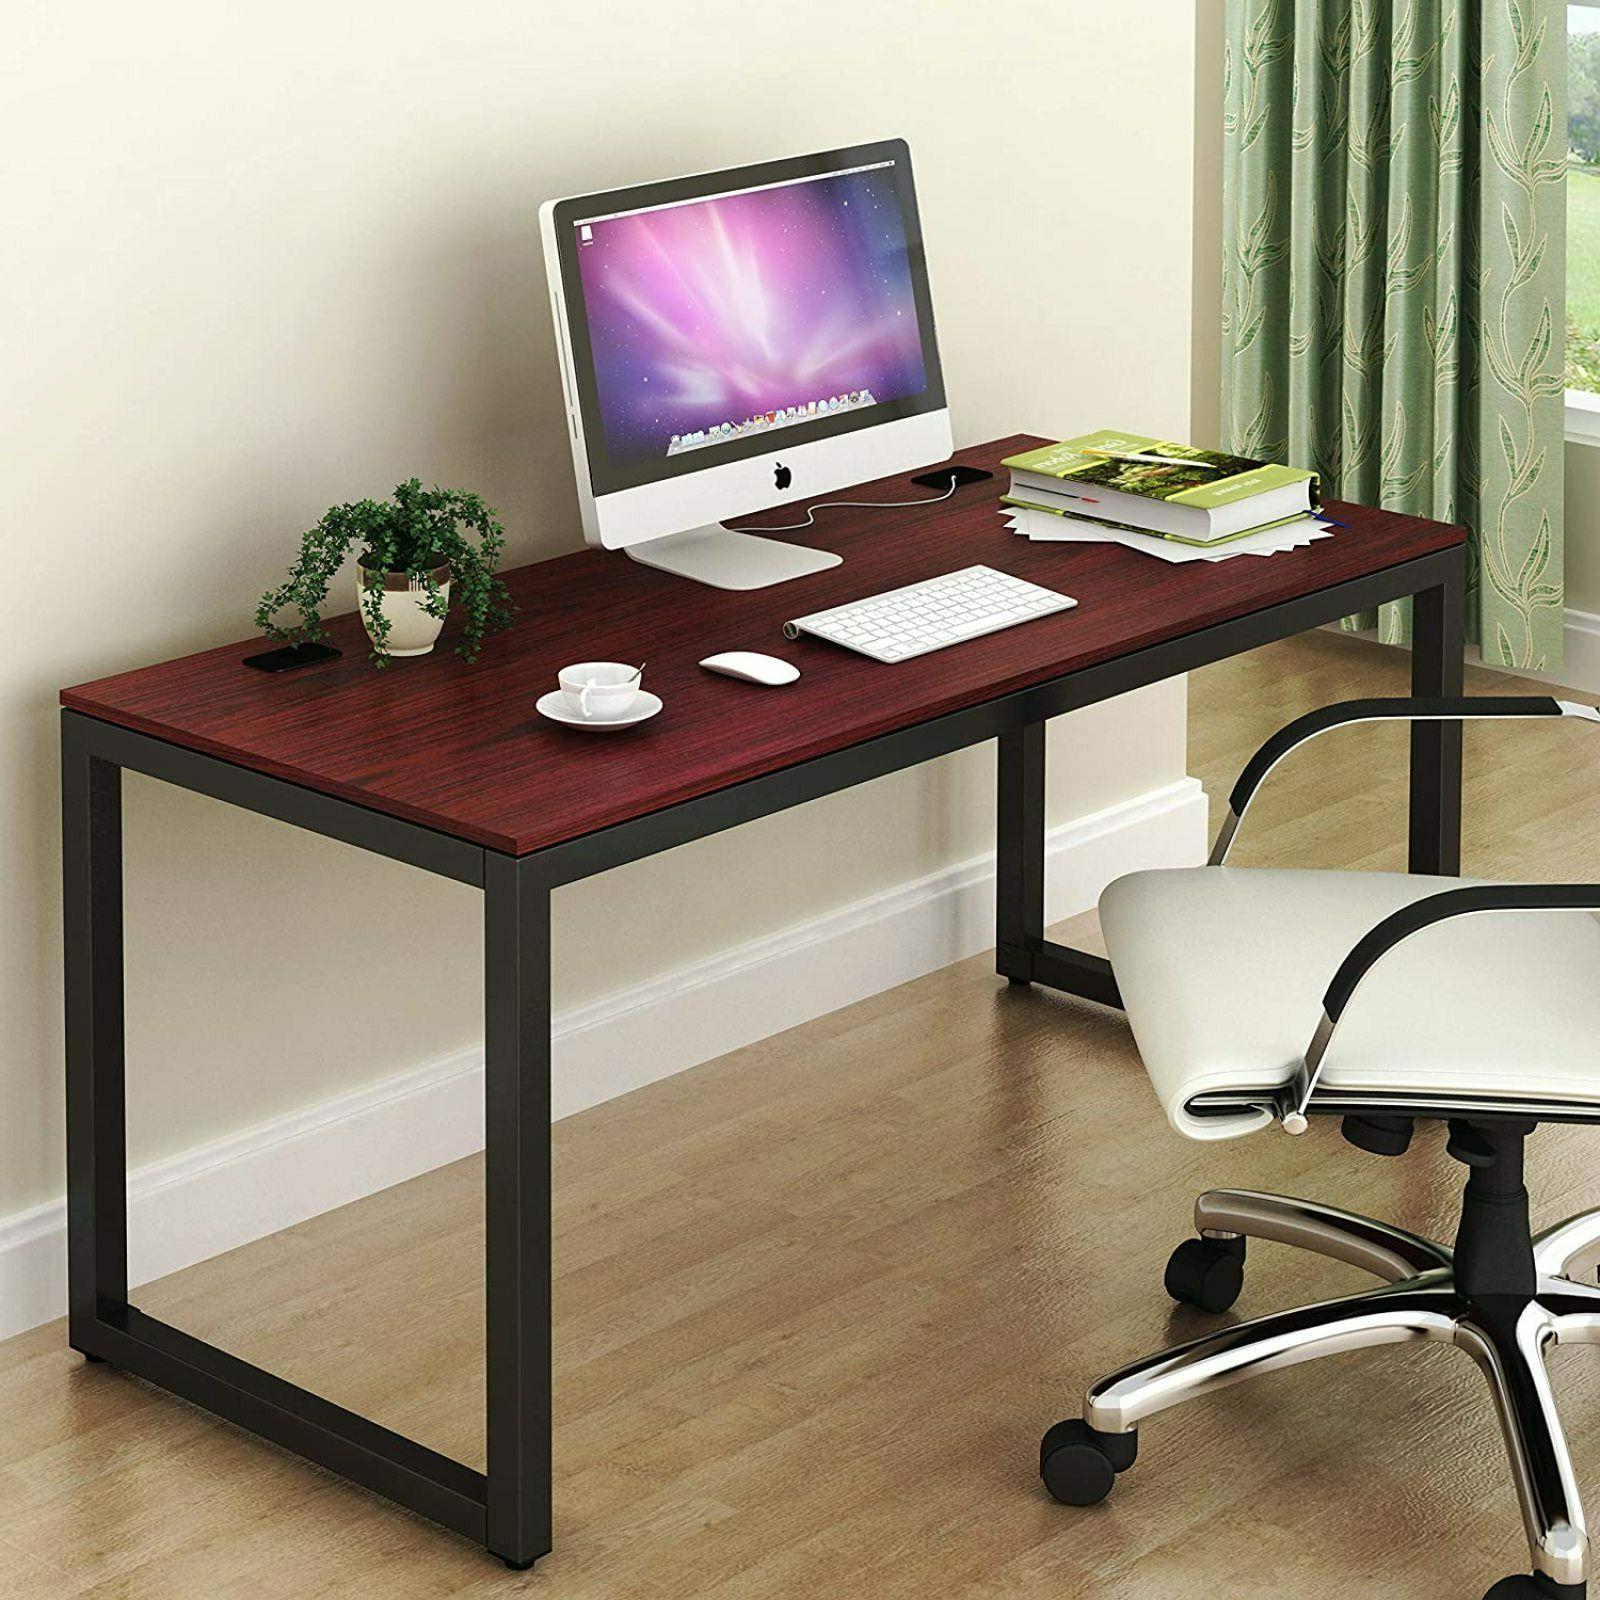 Large Computer Desk Student Table Organizer Home Office Blac